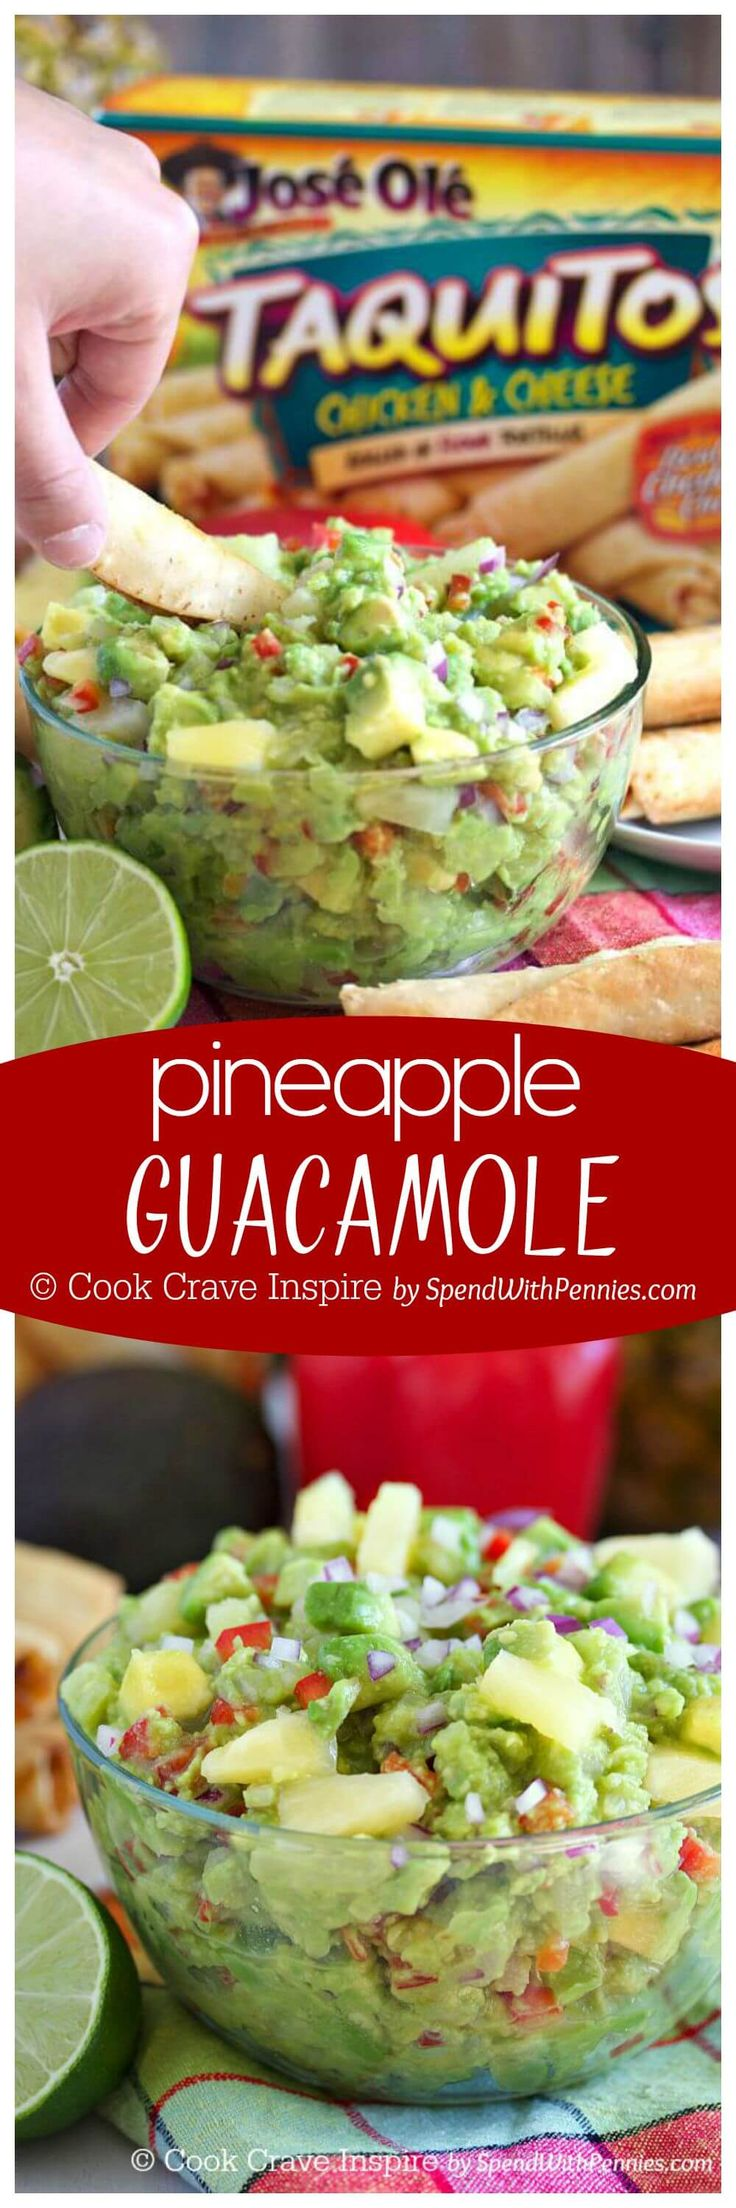 Pineapple Guacamole! Satisfy those teenager munchies!  Buttery avocado with fresh pineapple, cumin and onions is the perfect dip for taquitos! #spendwithpennies